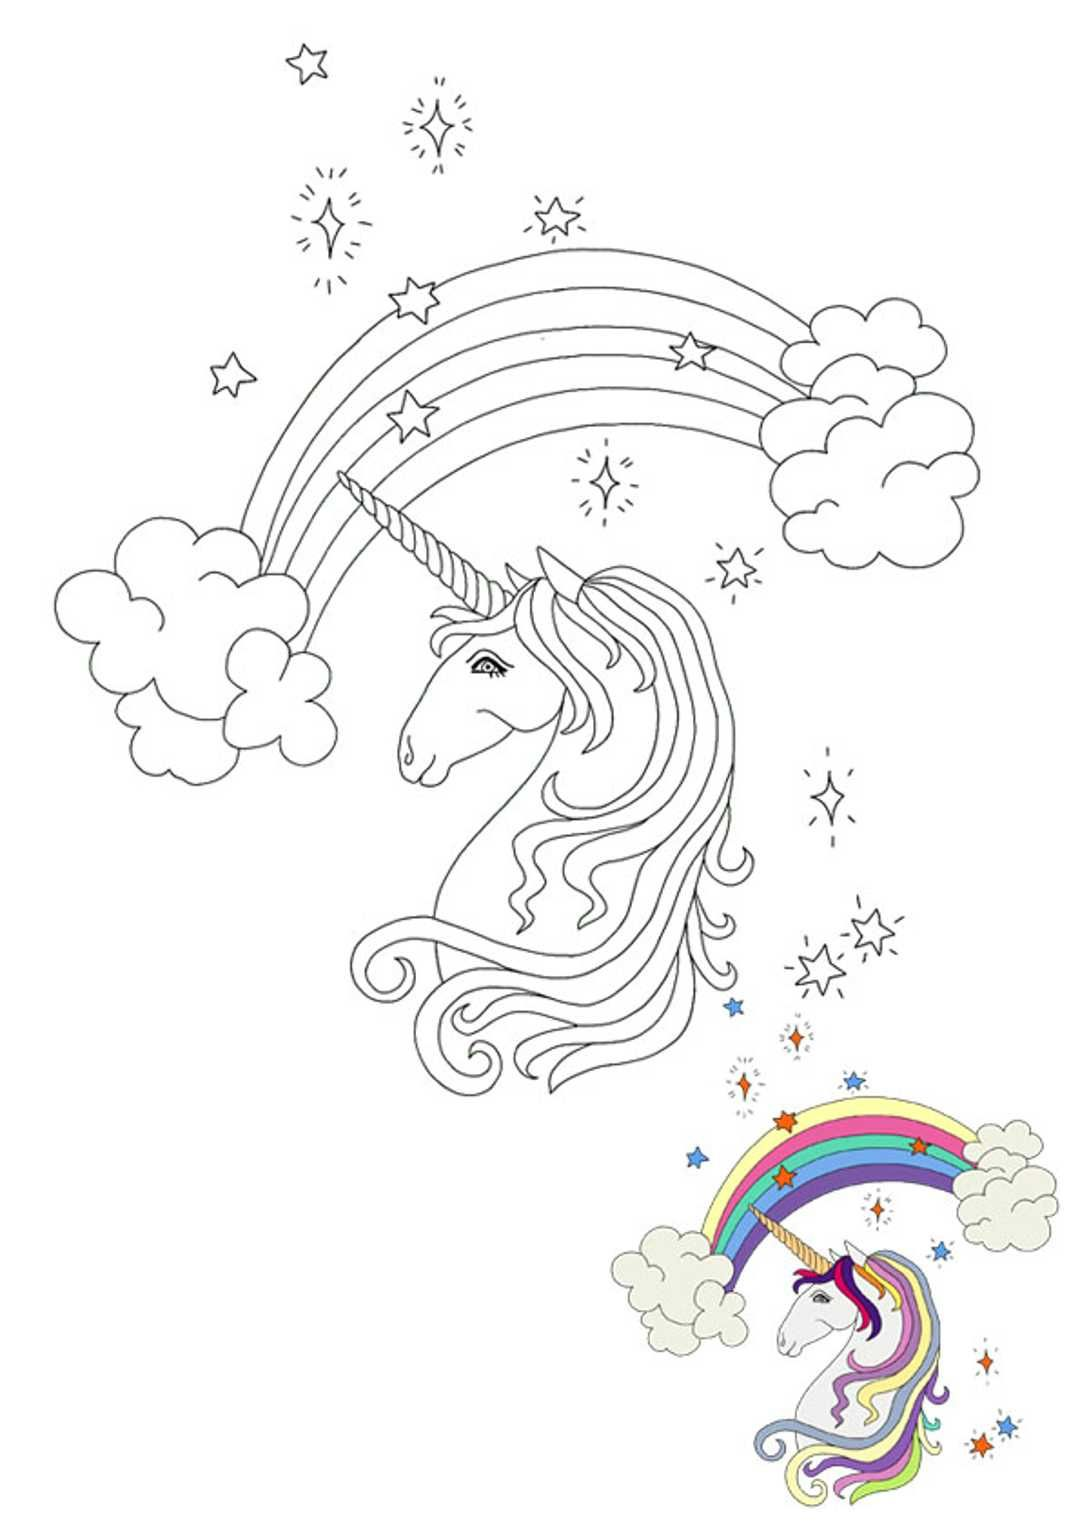 Unicorn Head Coloring Page Unicorn Coloring Pages Mermaid Coloring Pages Coloring Pages